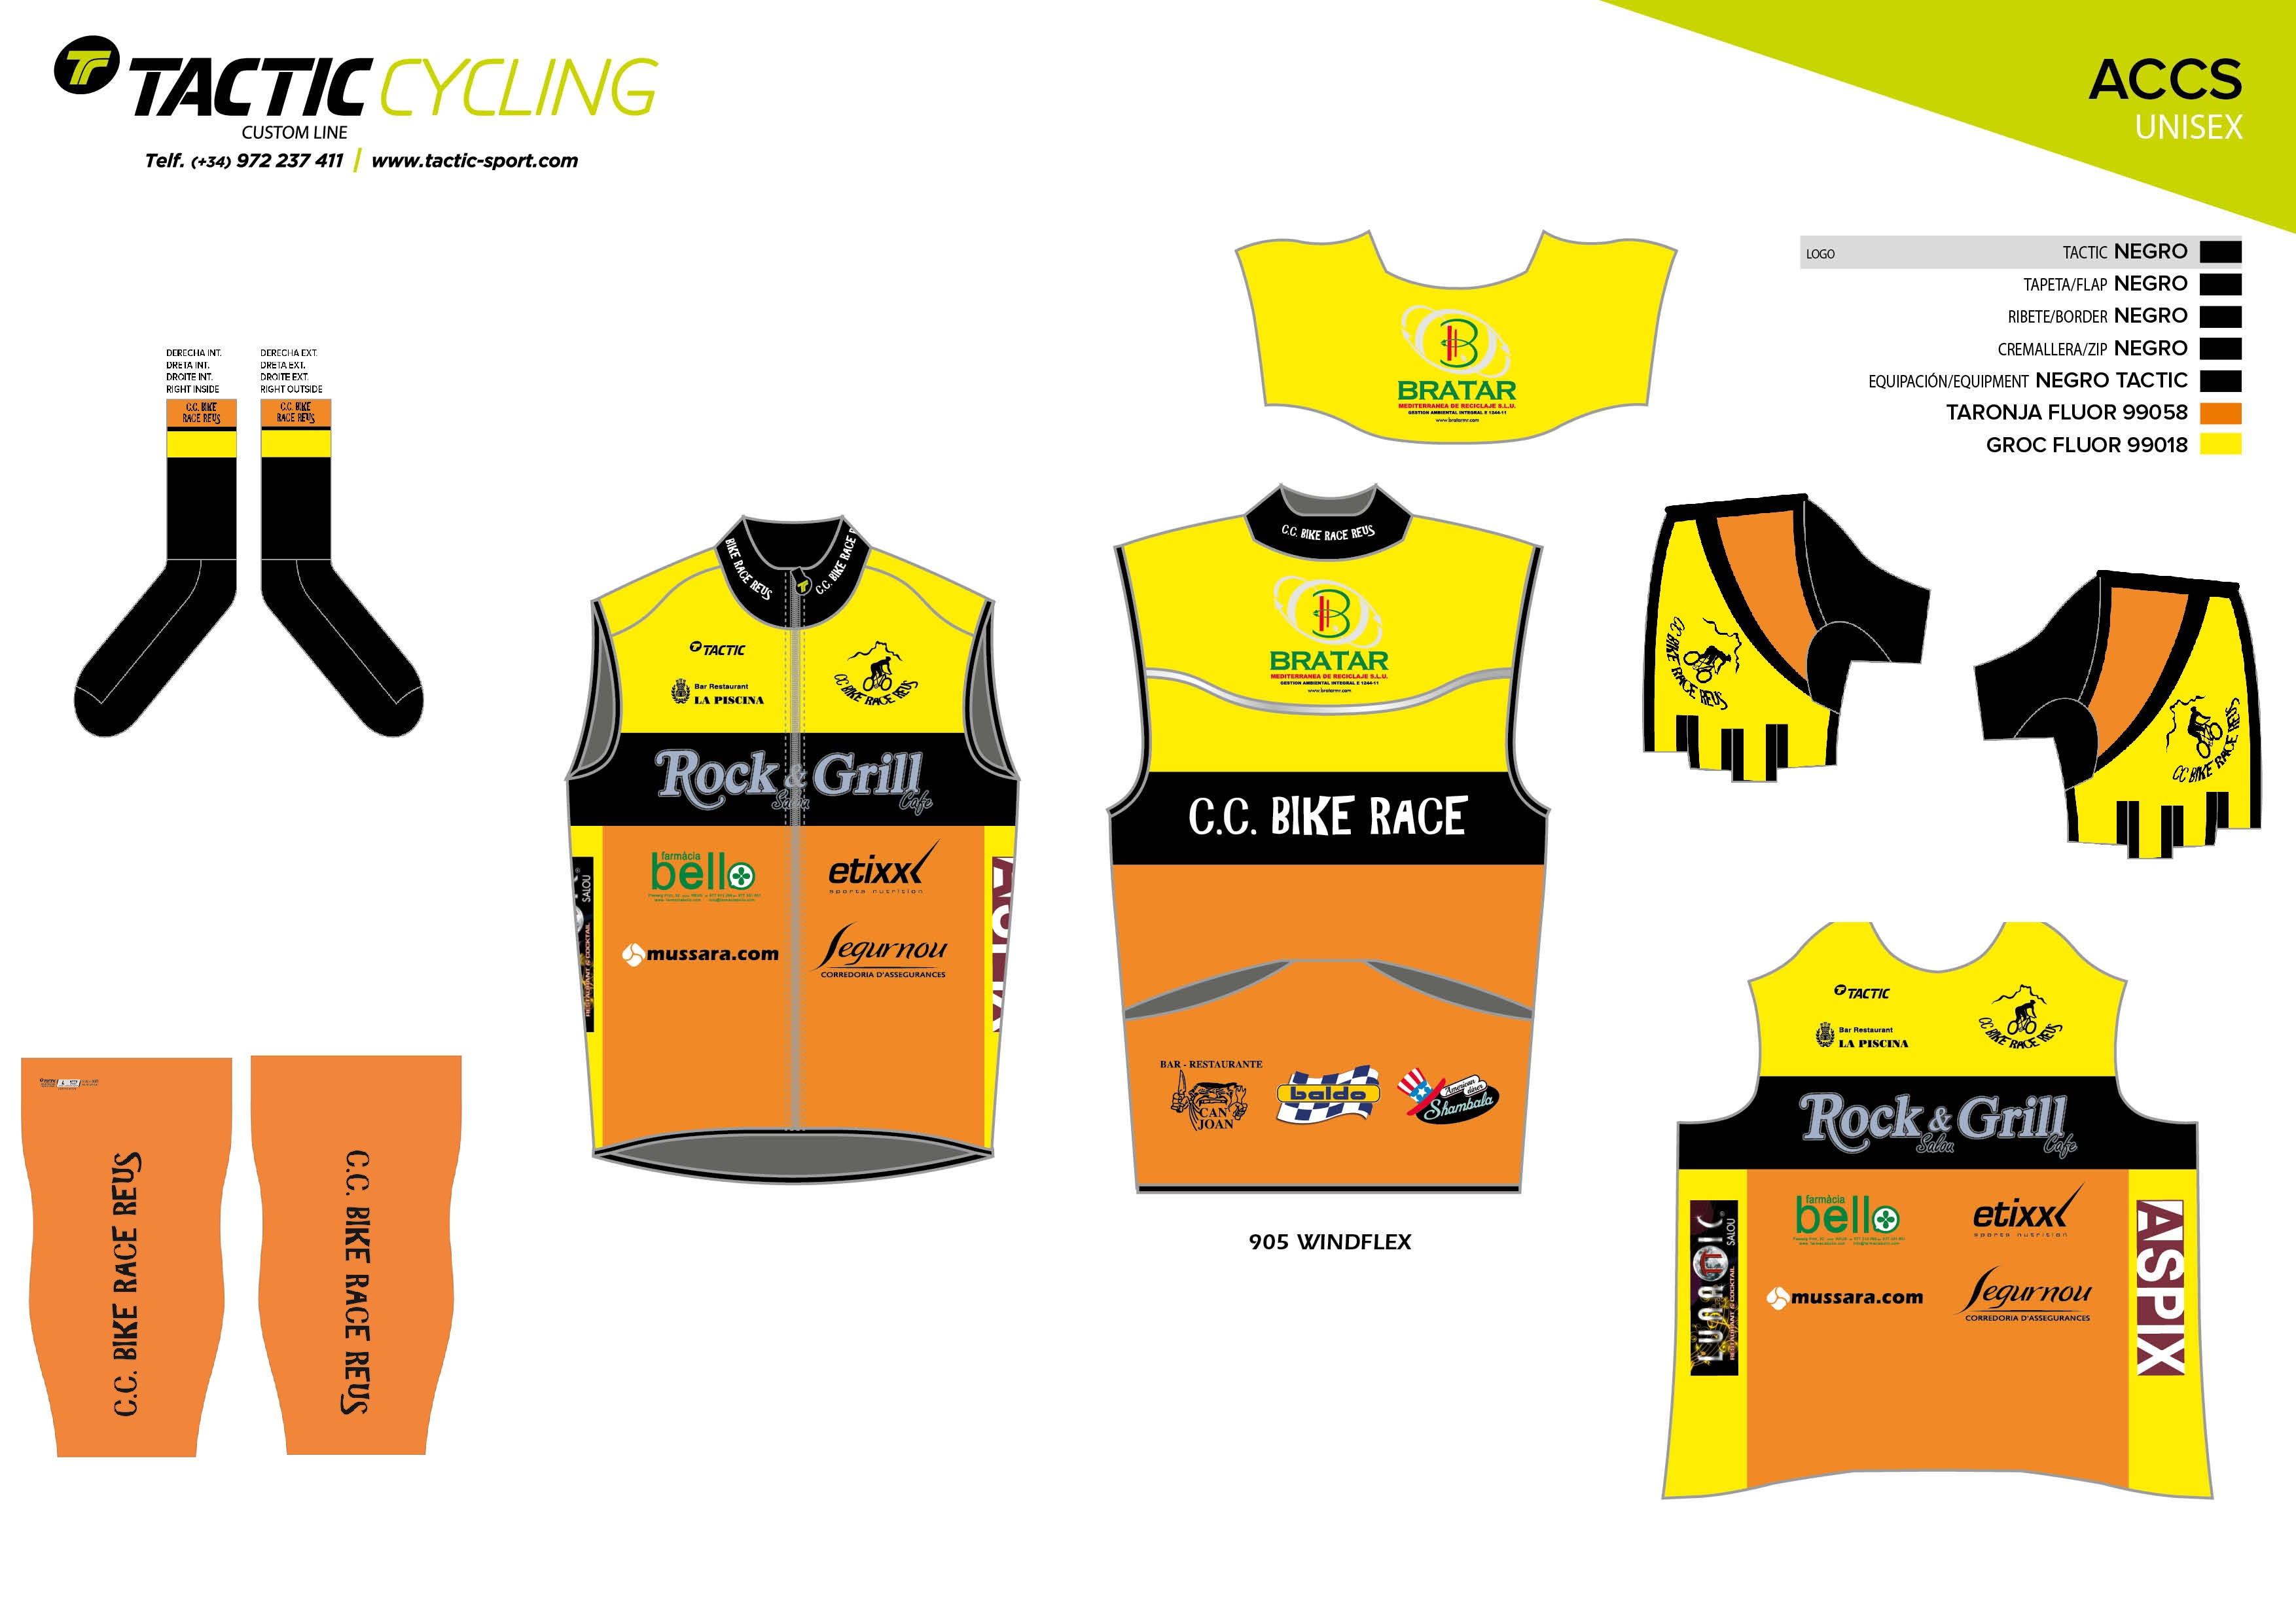 14431-c-c-bike-race-reus-23-web